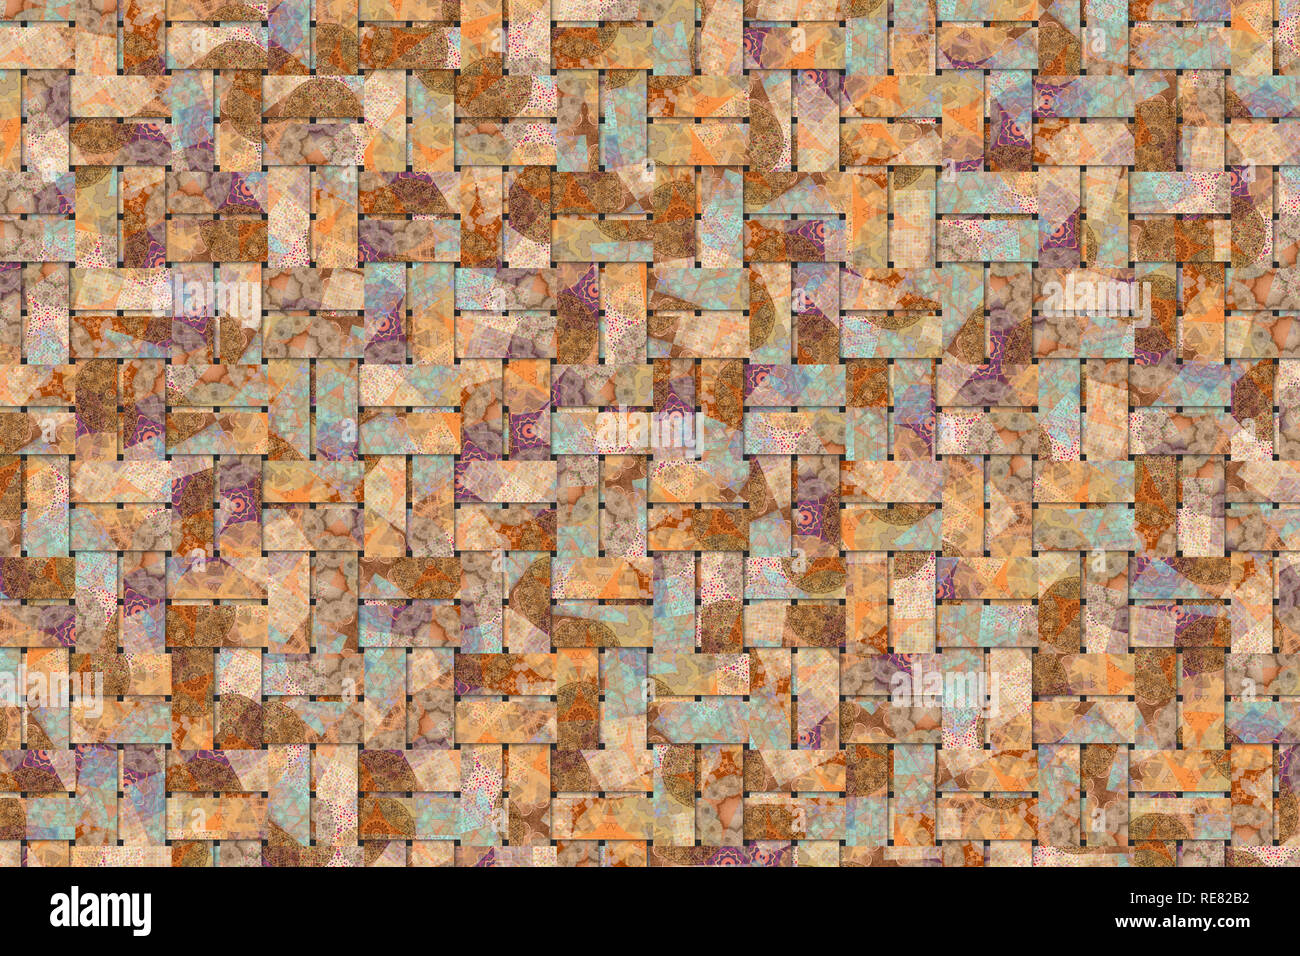 Background abstract woven mat, rattan for design, graphic resource. - Stock Image